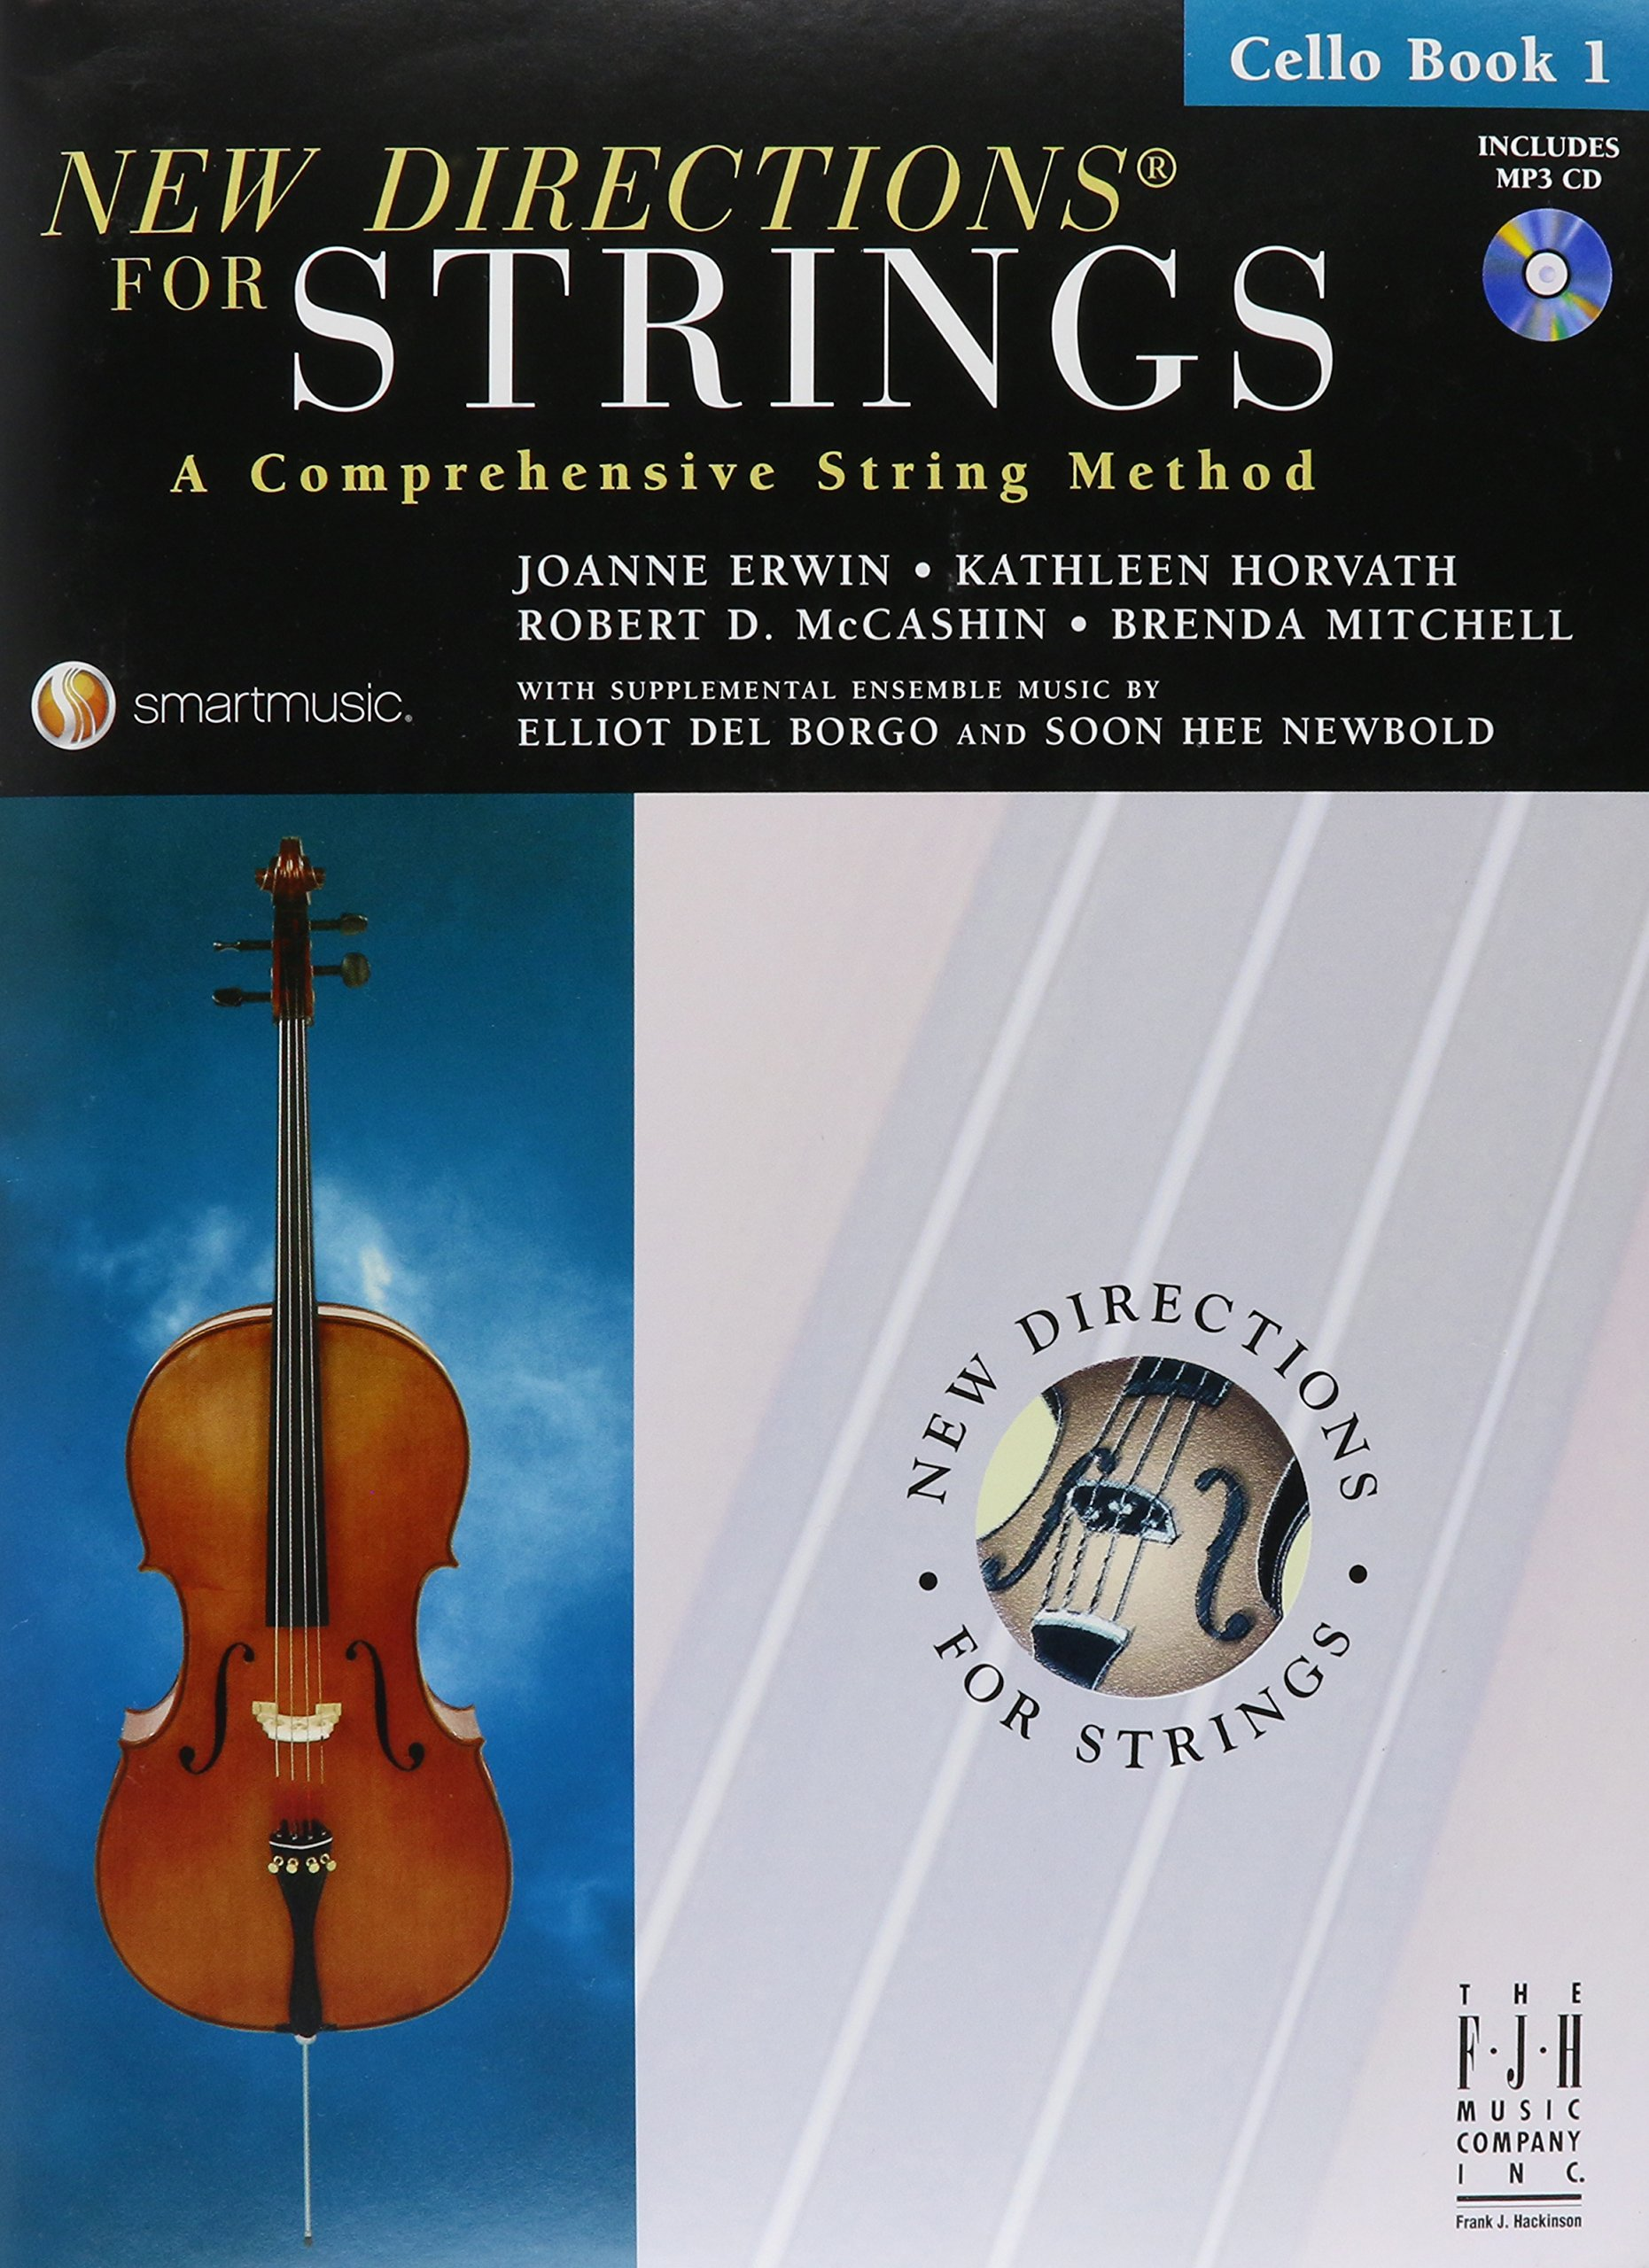 Amazon new directions for strings cello book 1 9781569395745 amazon new directions for strings cello book 1 9781569395745 joanne erwin kathleen horvath robert d mccashin brenda mitchell books fandeluxe Images